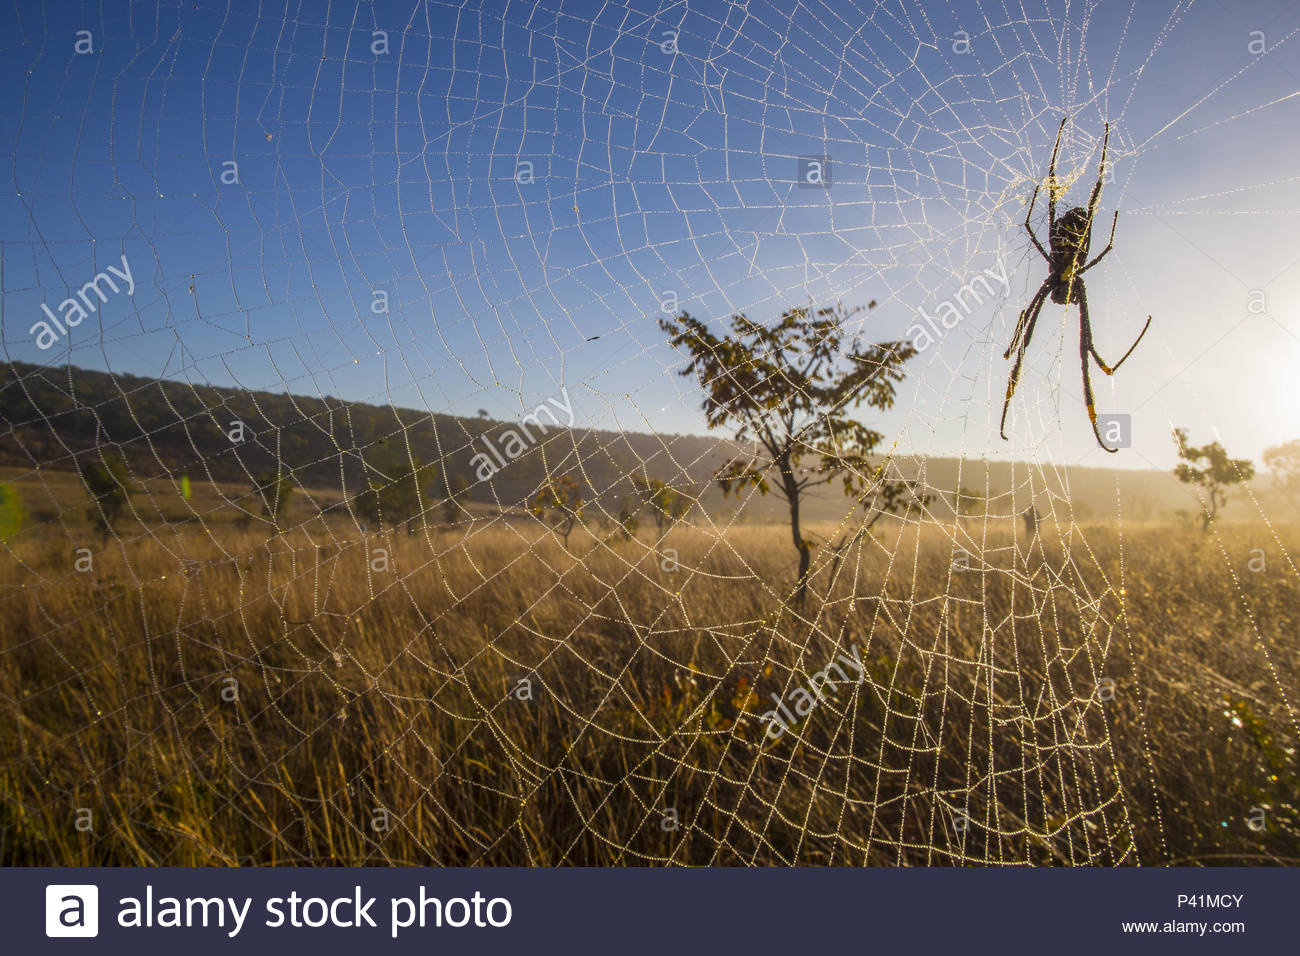 A spider on web in Angola. Stock Photo